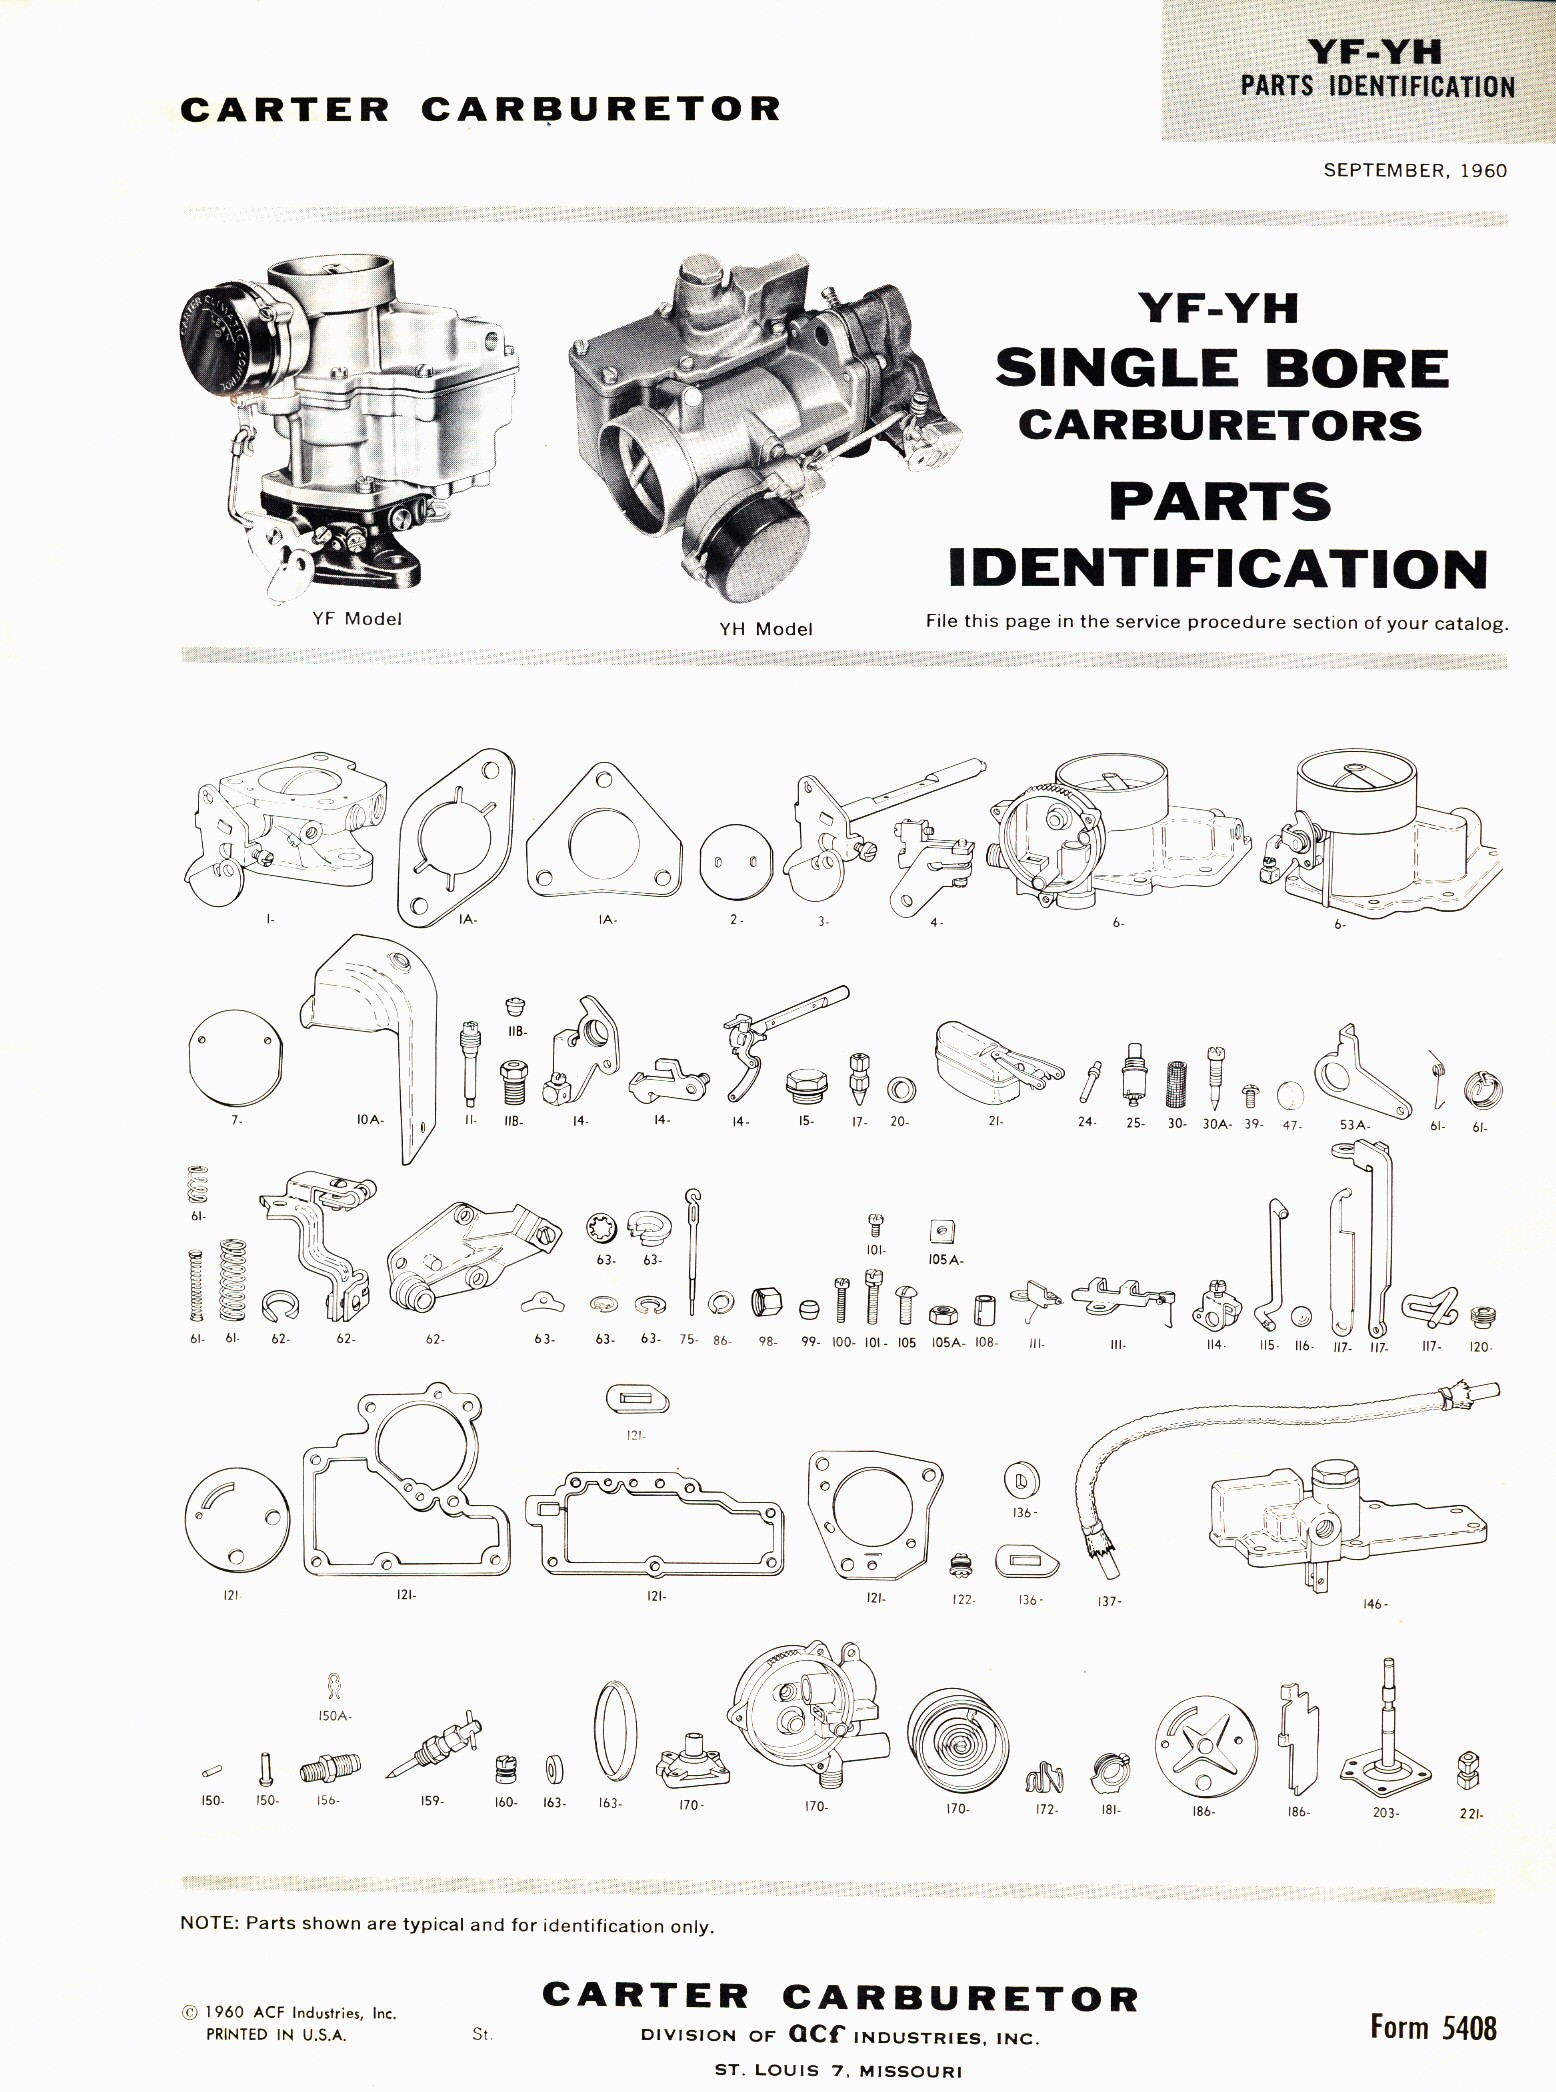 Honda Small Engine Carburetor Diagram Carter Y Yf Yfa Yh Ys the Carburetor Doctor Of Honda Small Engine Carburetor Diagram Honda Gcv160 Carburetor Diagram – 917 Craftsman 17 Hp 42 Inch Mower